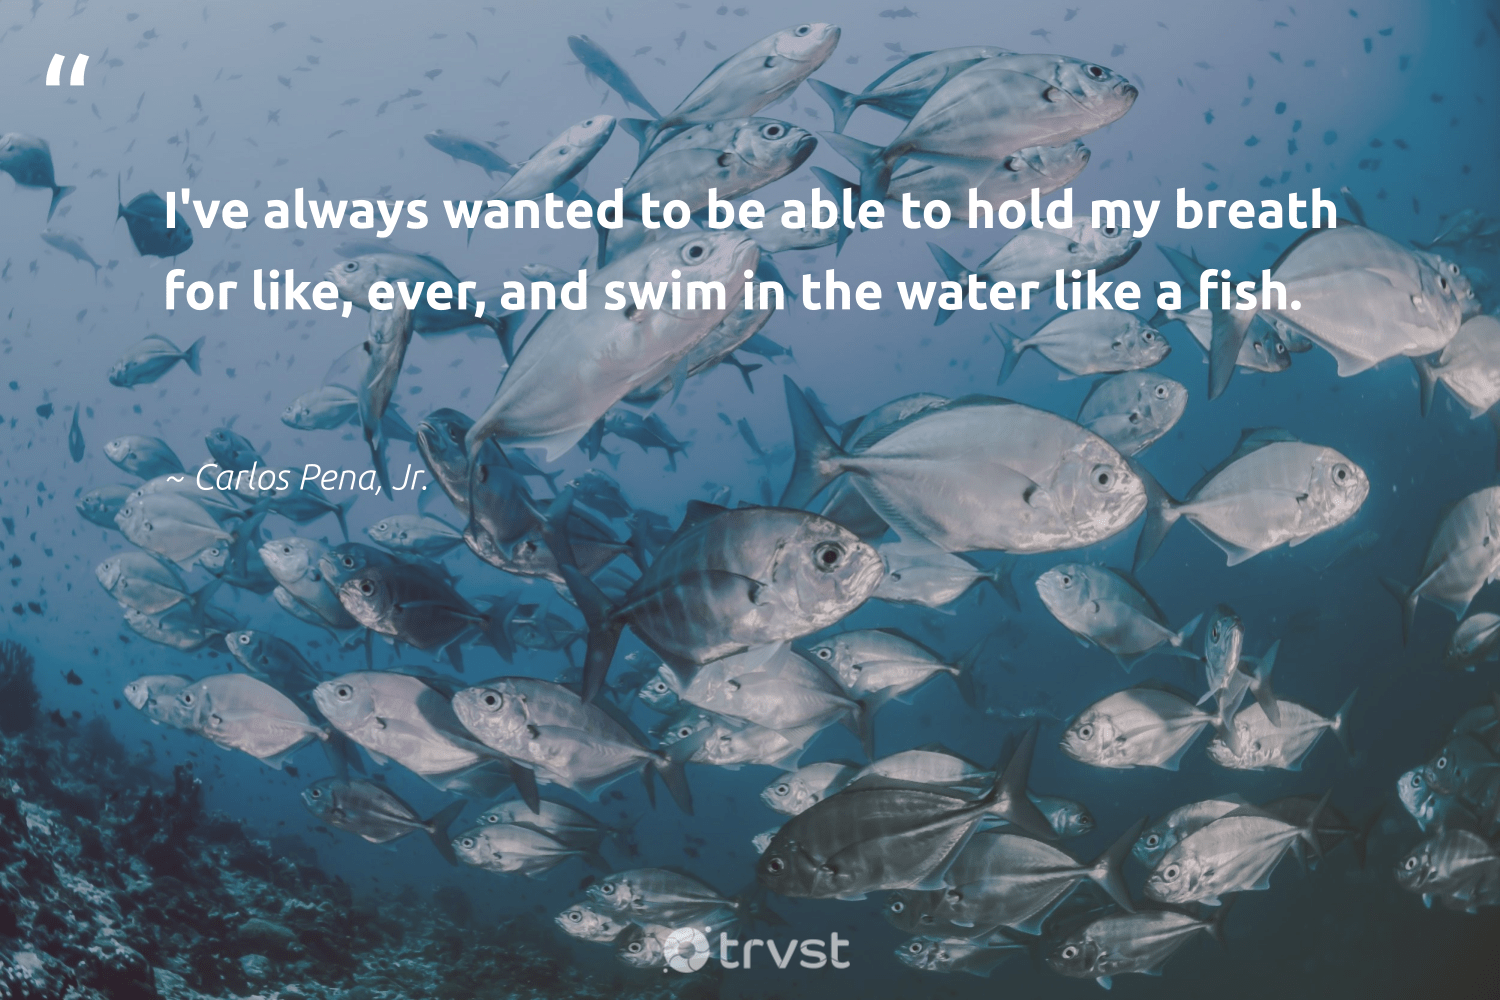 """""""I've always wanted to be able to hold my breath for like, ever, and swim in the water like a fish.""""  - Carlos Pena, Jr. #trvst #quotes #water #fish #oceanpollution #intheocean #volunteer #changetheworld #saveourocean #oceans #green #gogreen"""